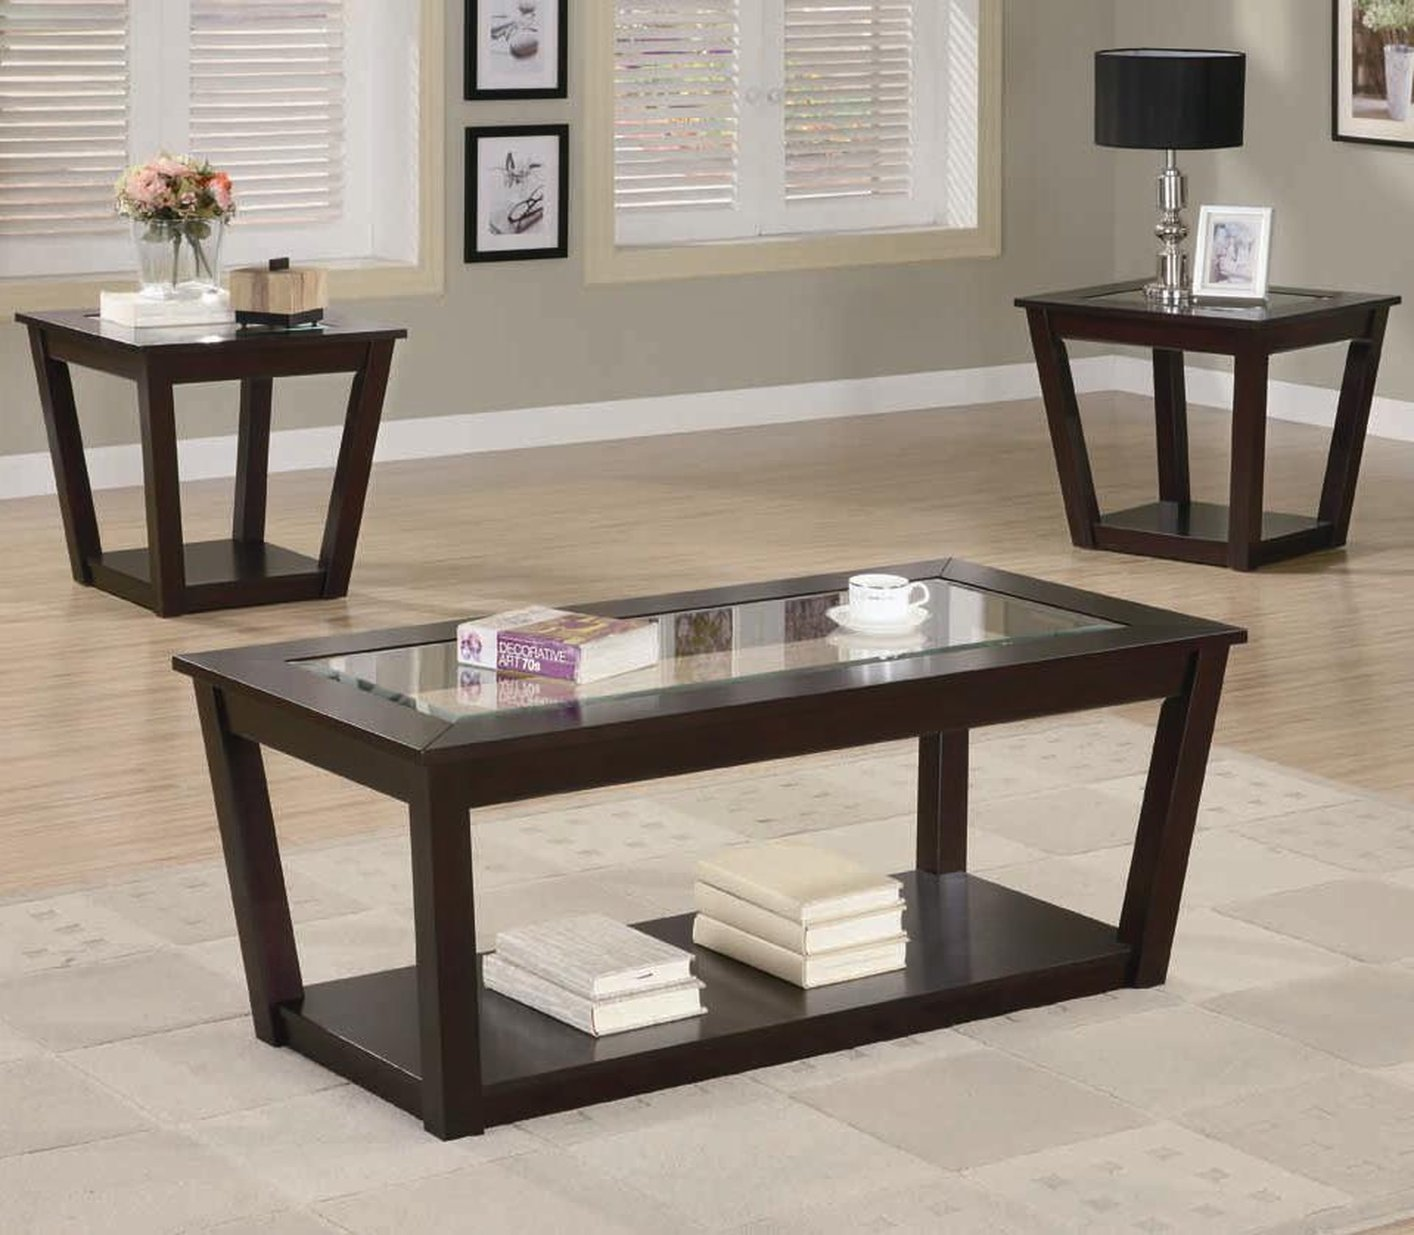 Fenmore Brown Glass Coffee Table Set - Steal-A-Sofa Furniture Outlet ...